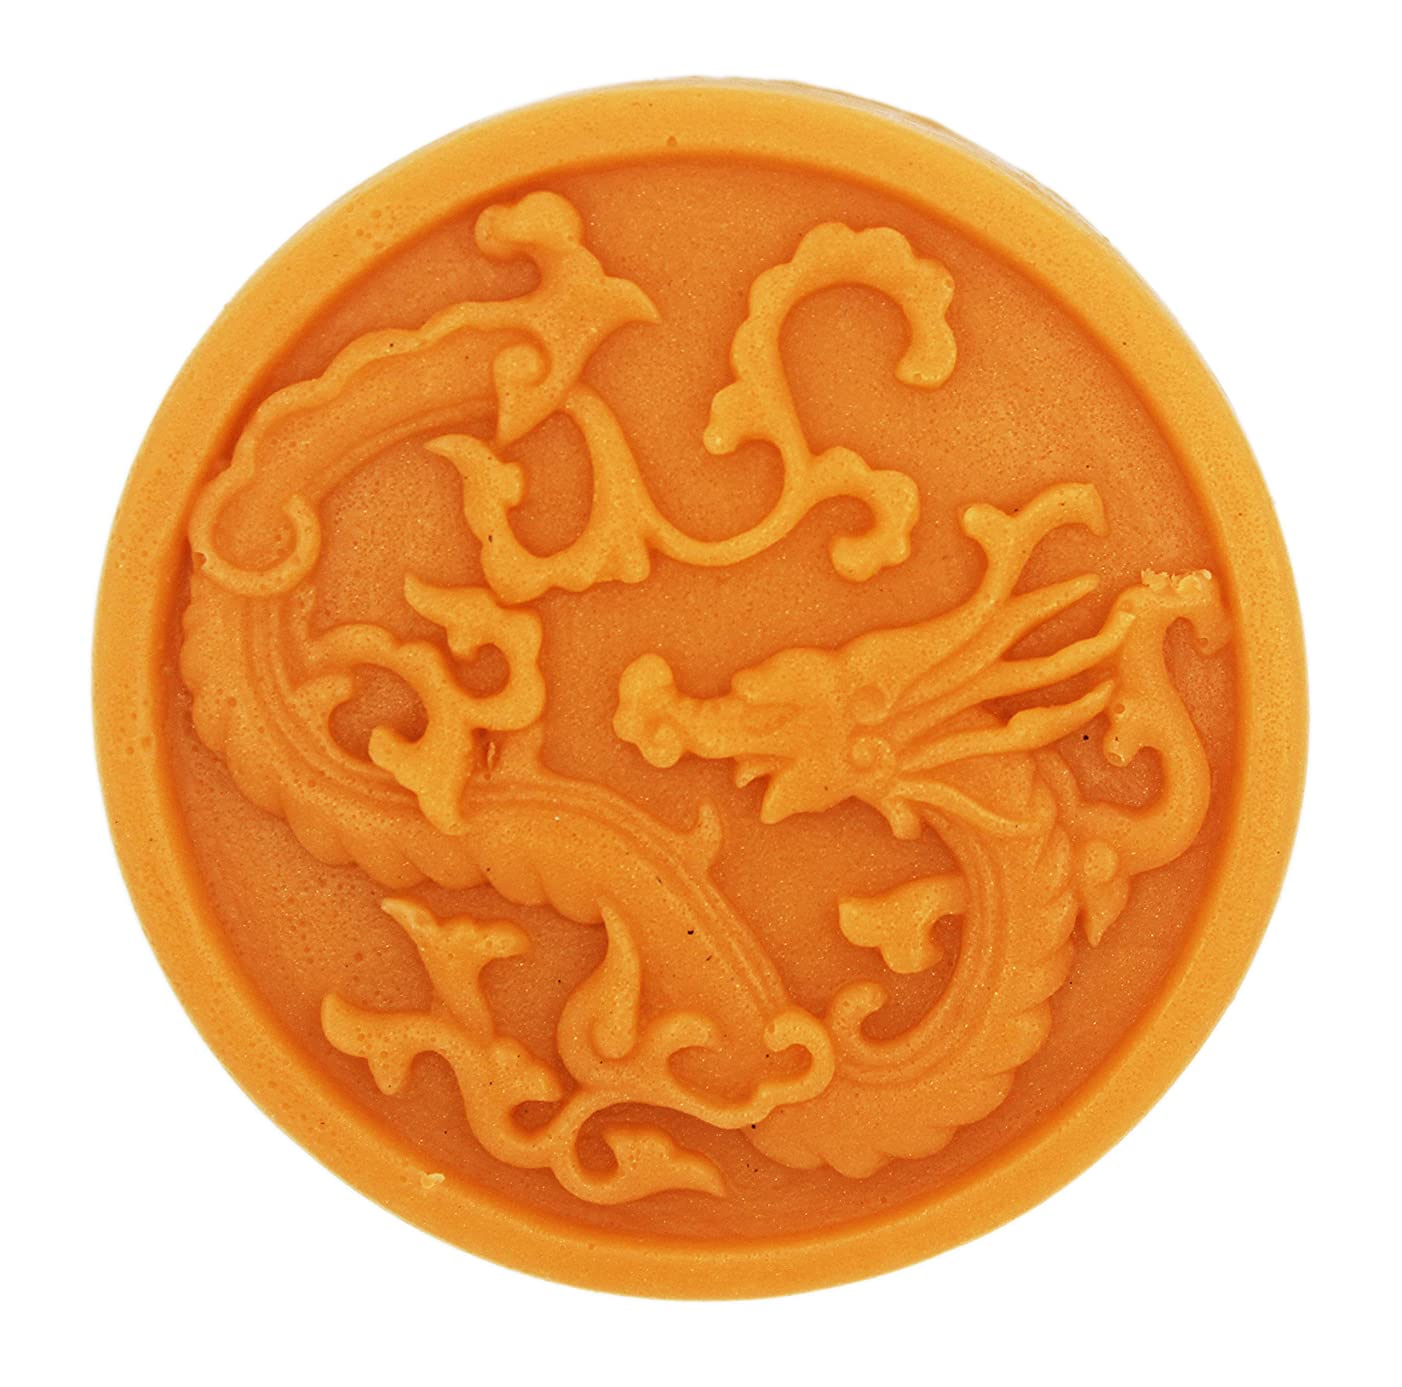 Longzang Chinese dragon S0230 Craft Art Silicone Soap mold Craft Molds DIY Handmade soap molds